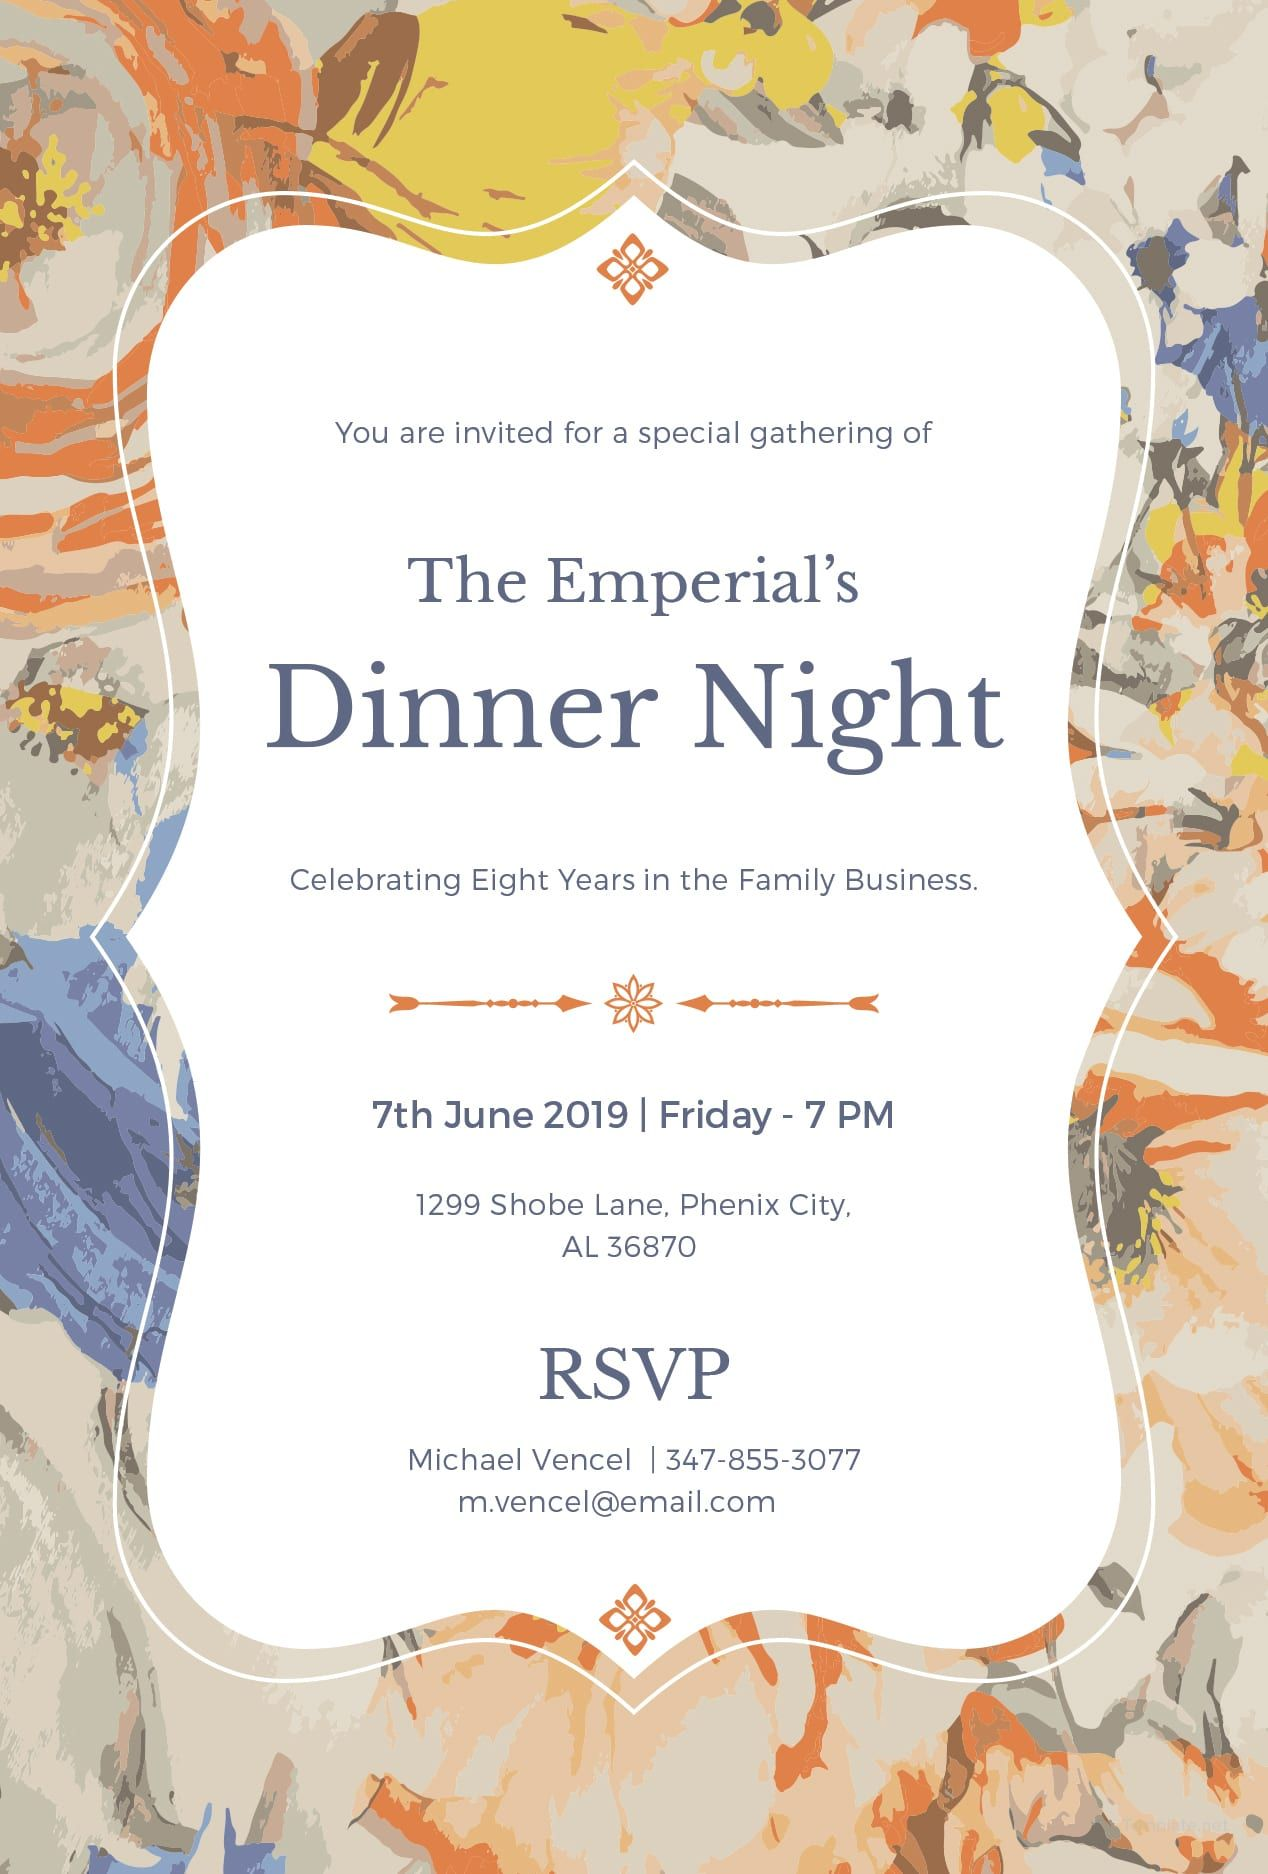 Formal Dinner Invitation  Dinner invitation wording, Dinner party